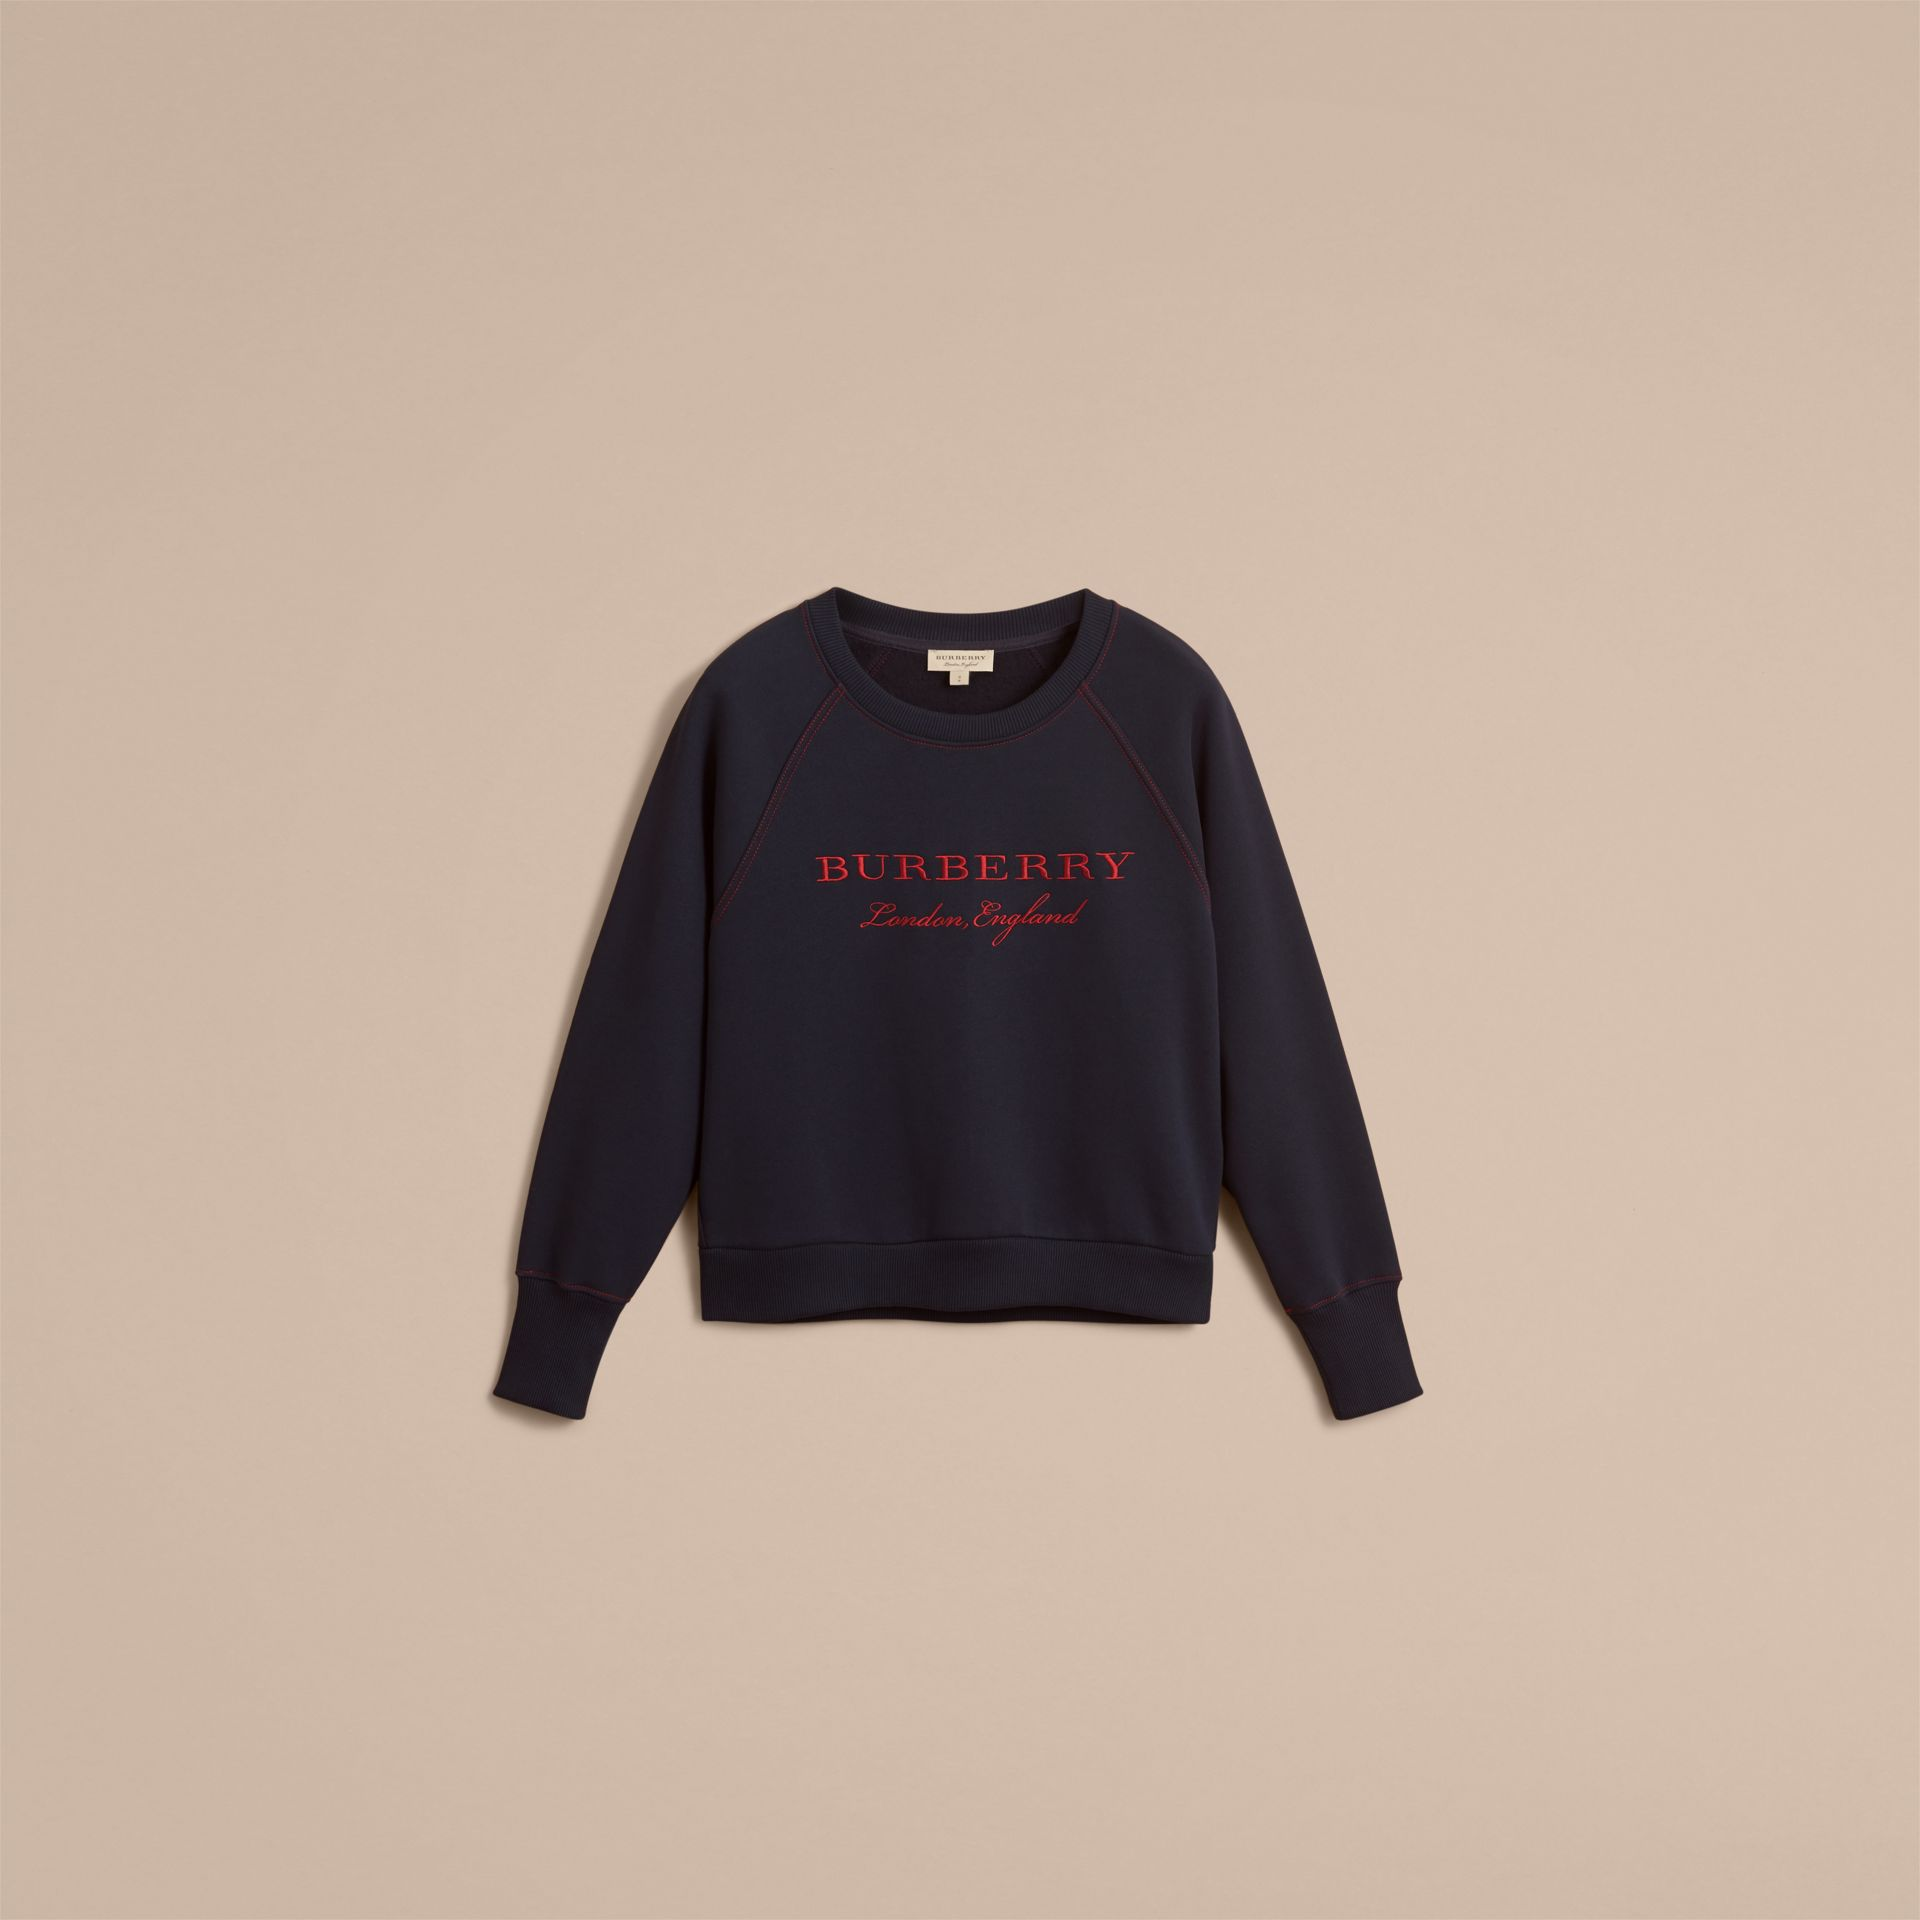 Embroidered Cotton Blend Jersey Sweatshirt in Navy - Women | Burberry Australia - gallery image 3